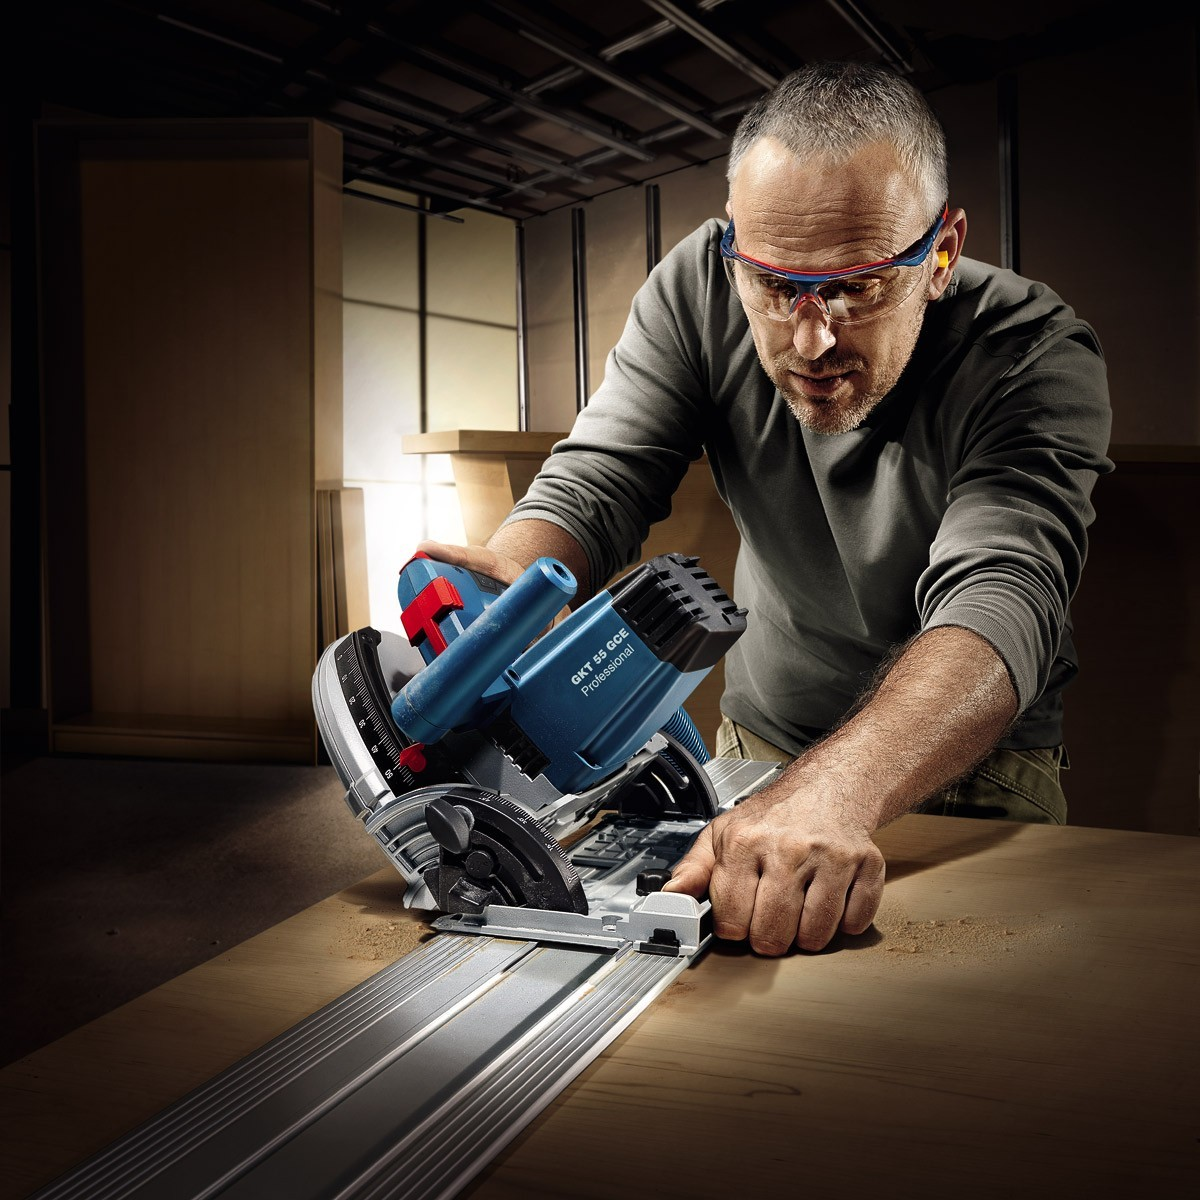 bosch gkt 55 gce 160mm 1400w plunge saw in l boxx powertool world. Black Bedroom Furniture Sets. Home Design Ideas